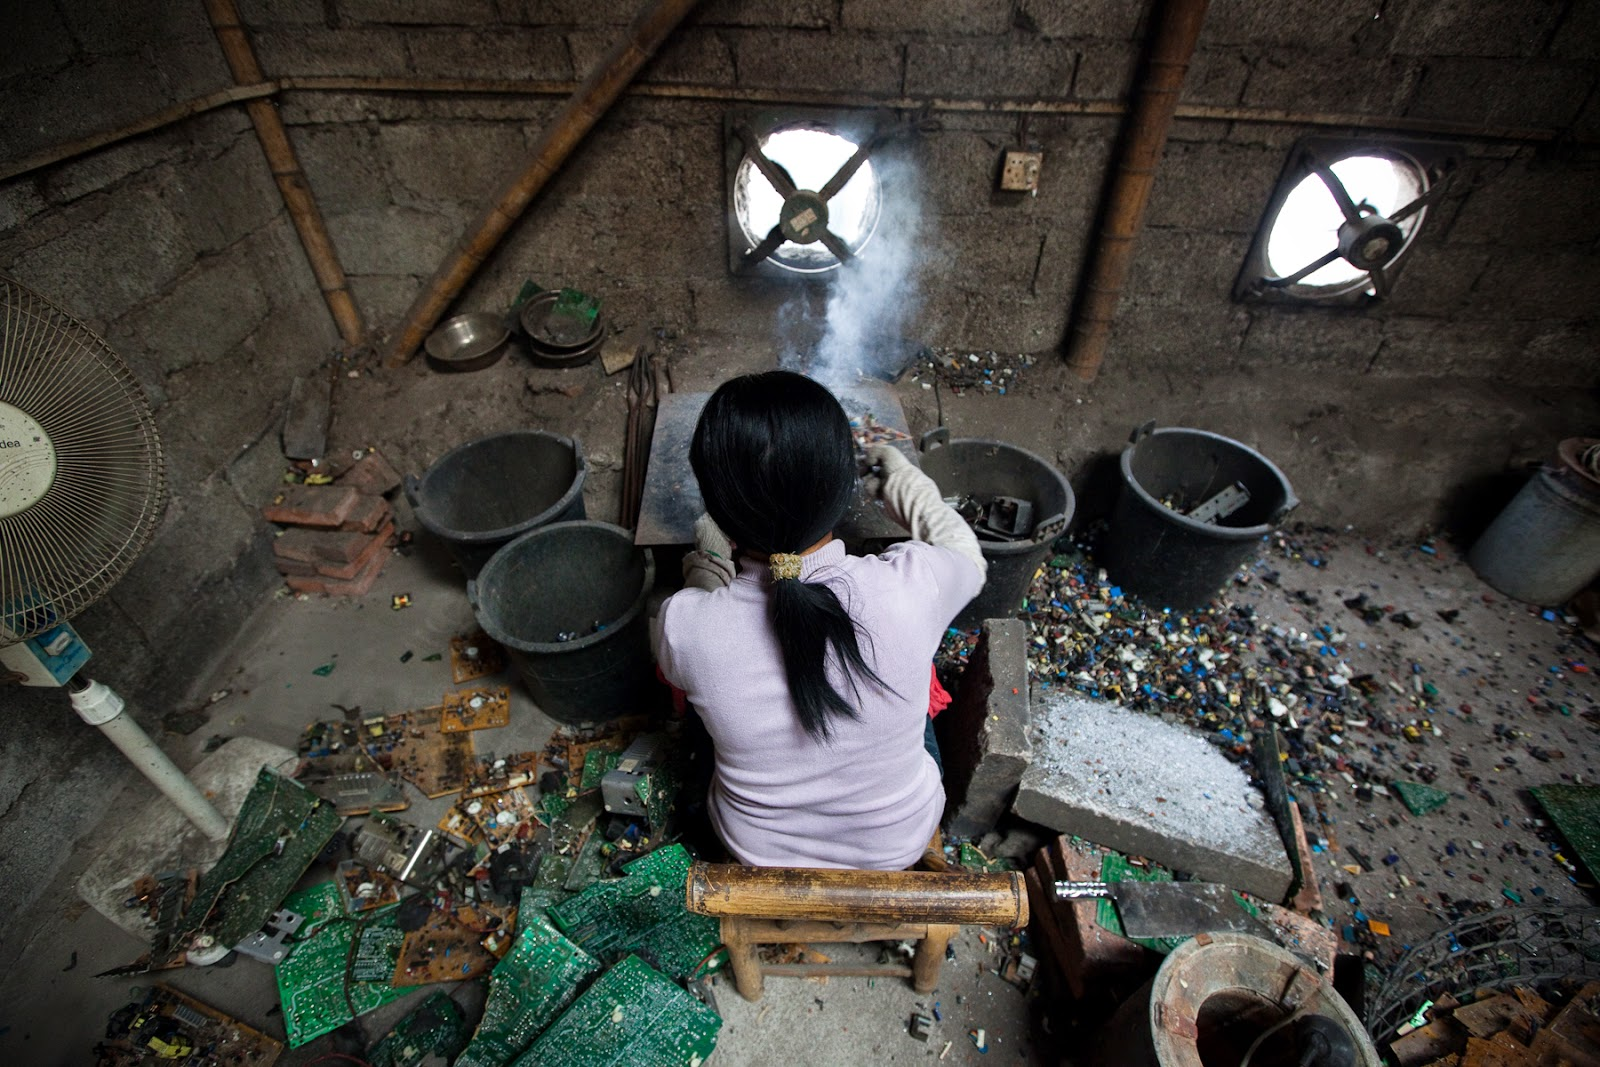 A 'Recycling Lab' from the Global South: Woman cooking circuit boards in a makeshift kitchen